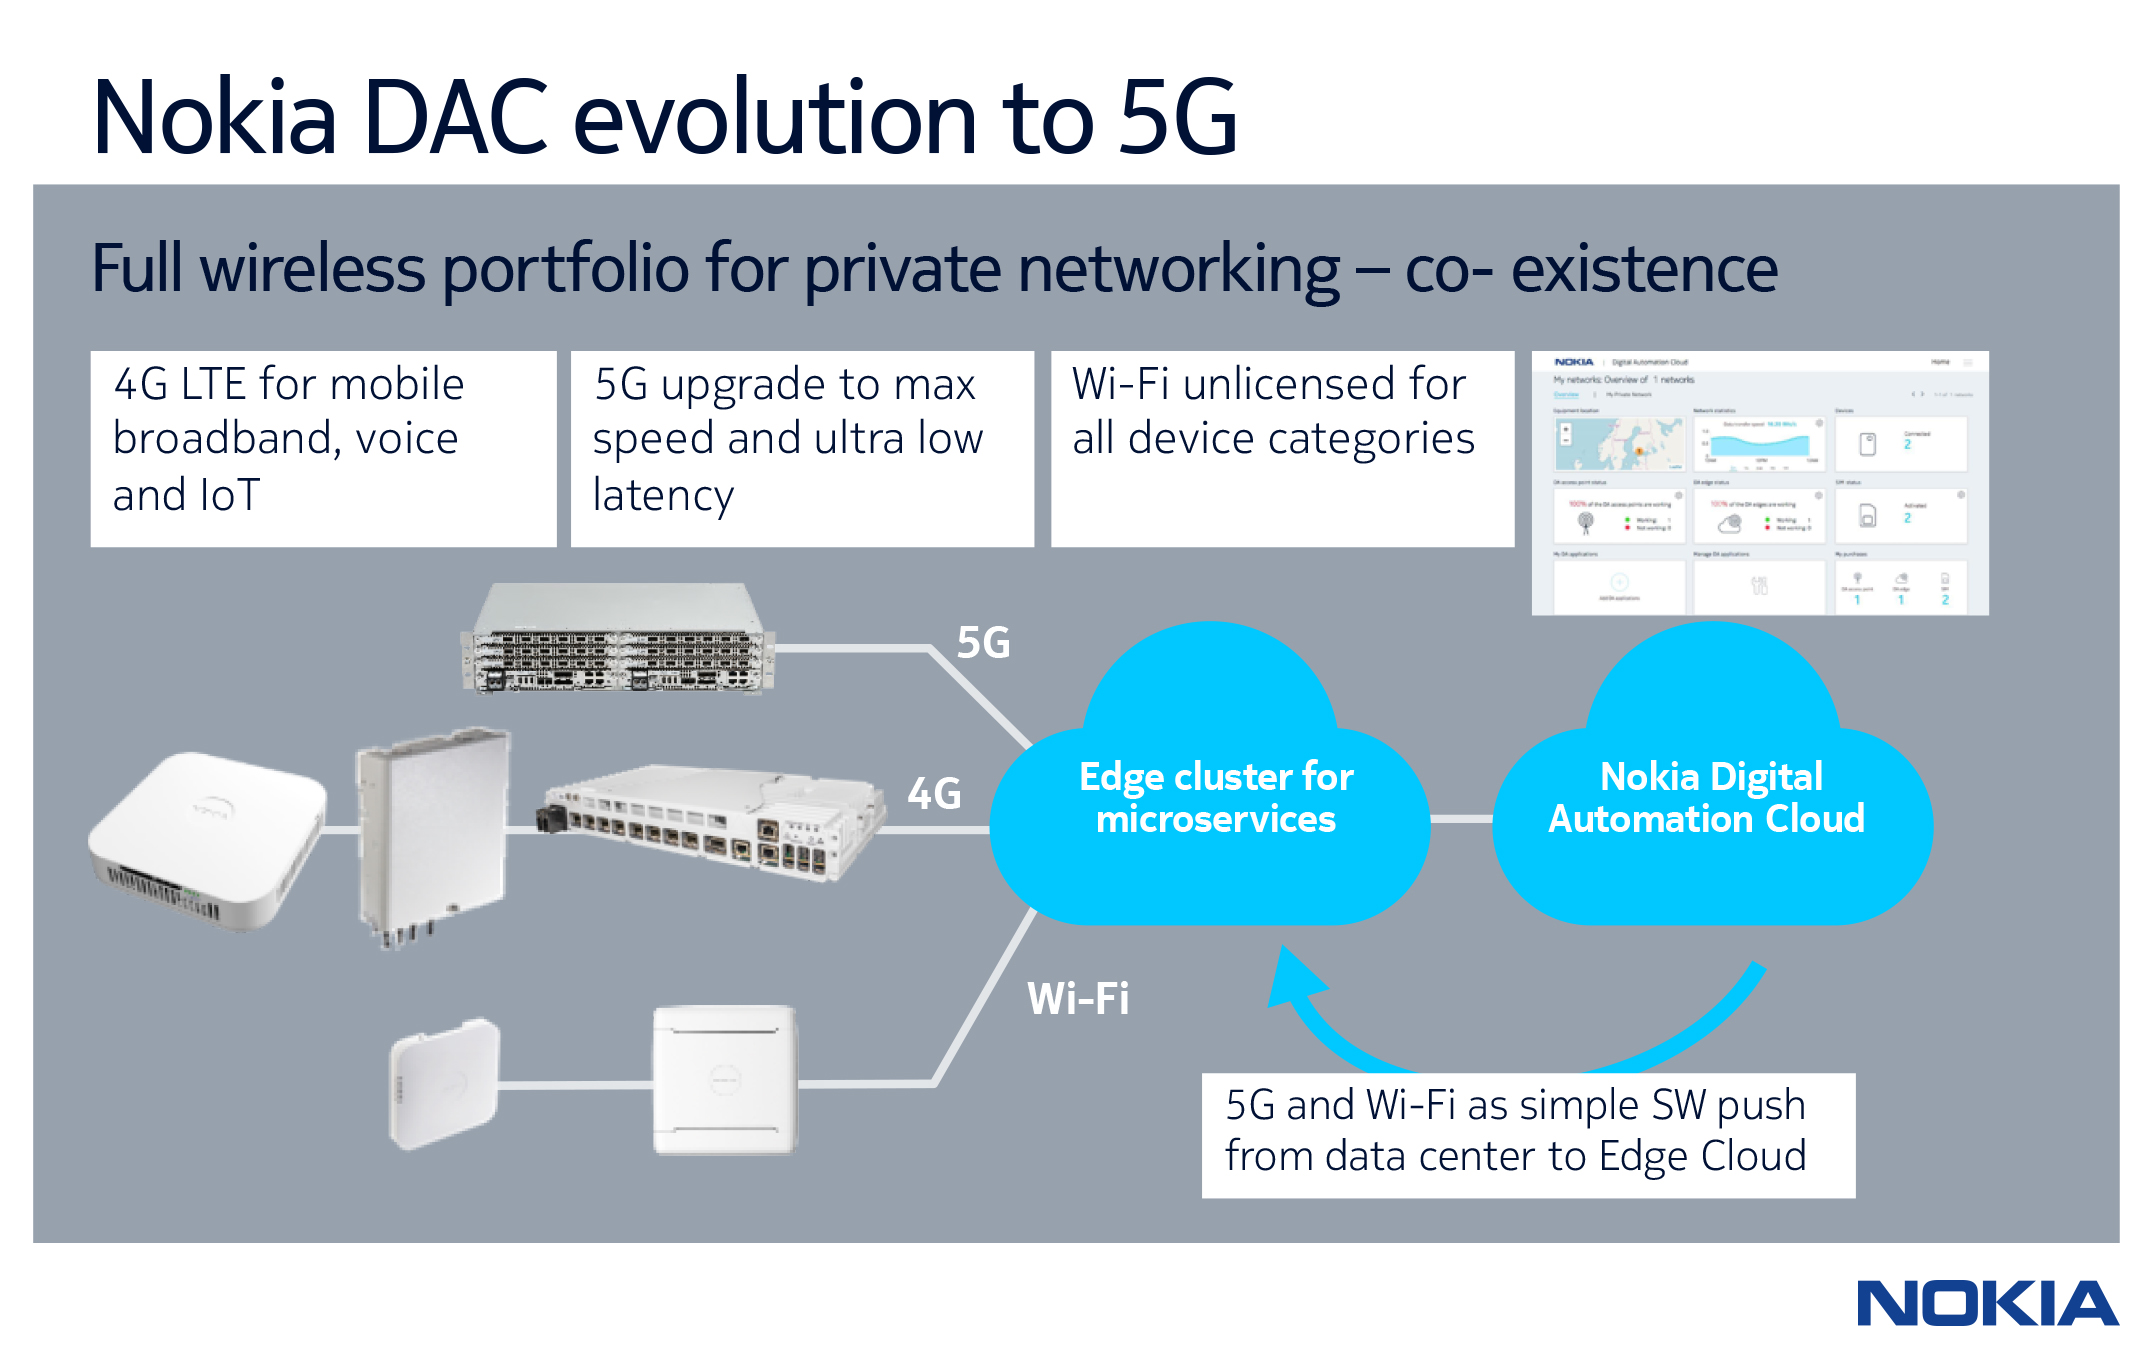 Nokia DAC evolution to 5G